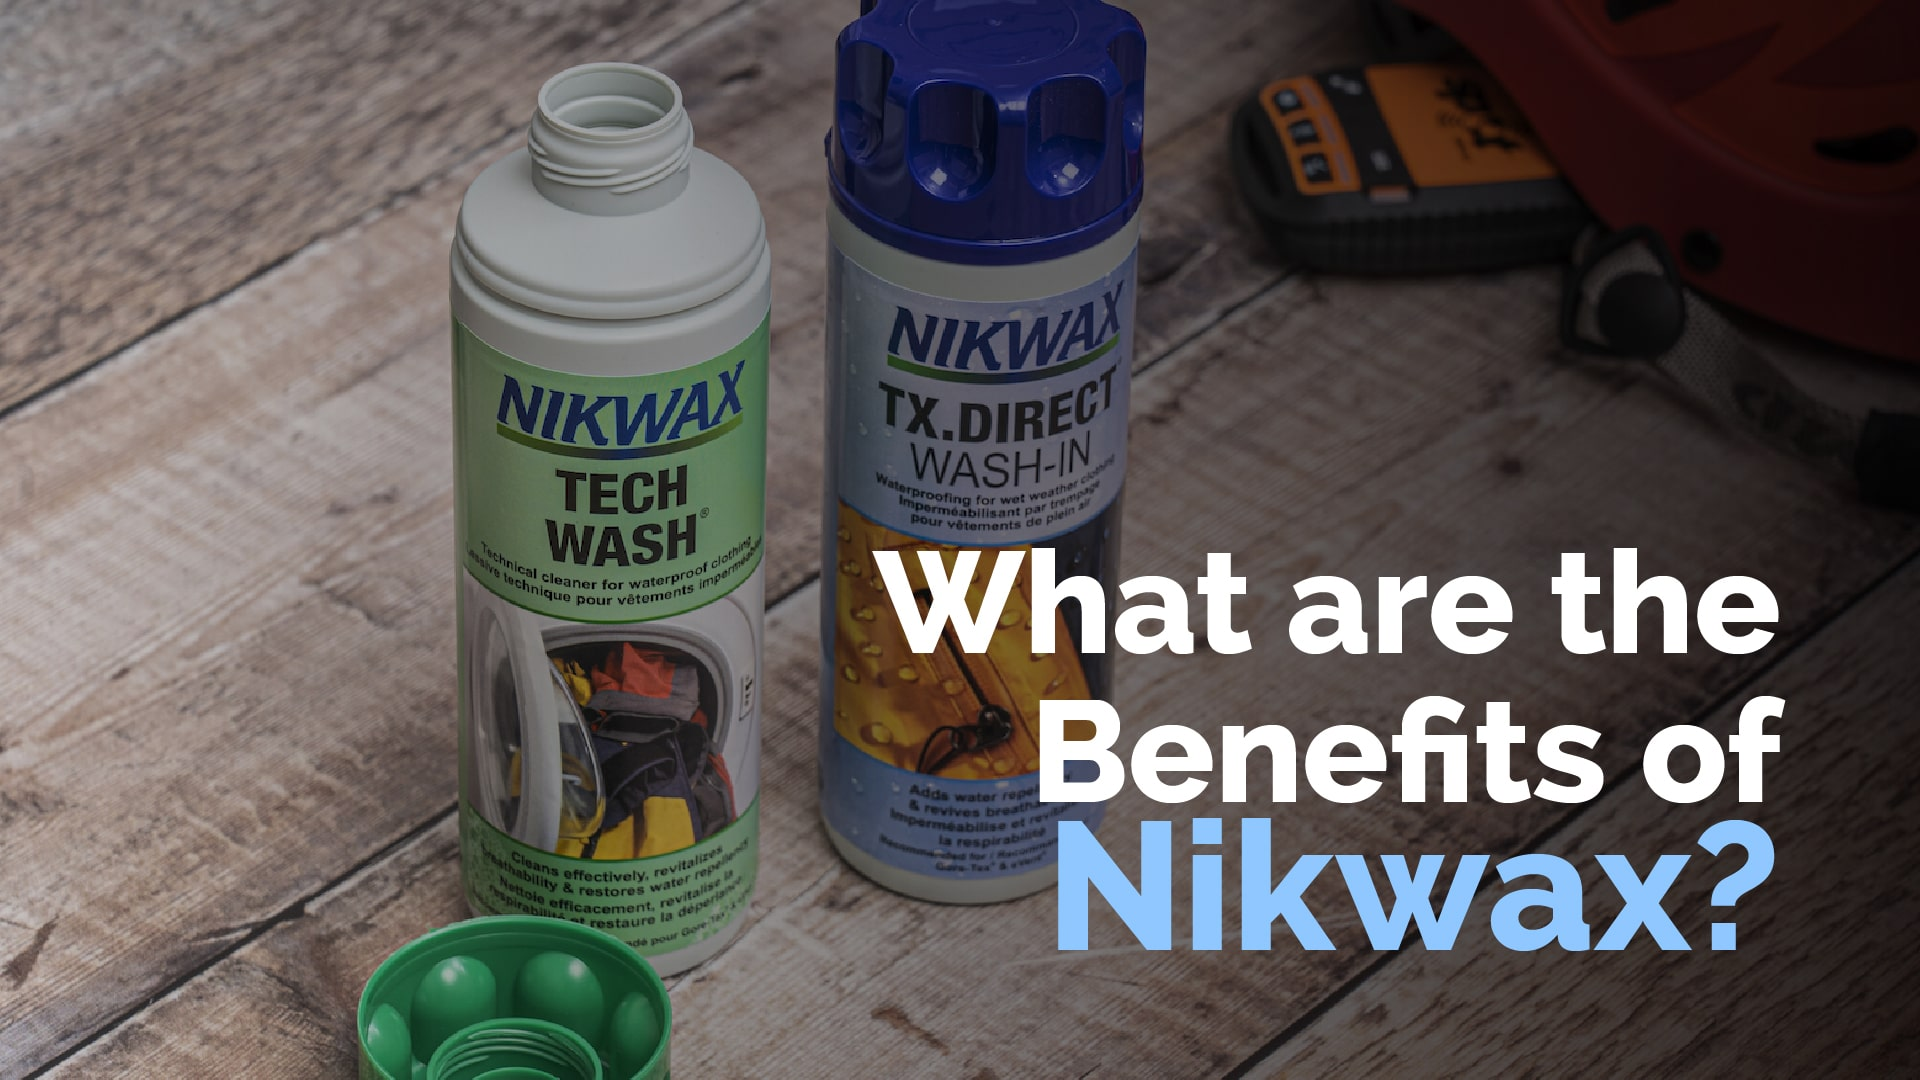 What Are The Benefits of Nikwax?